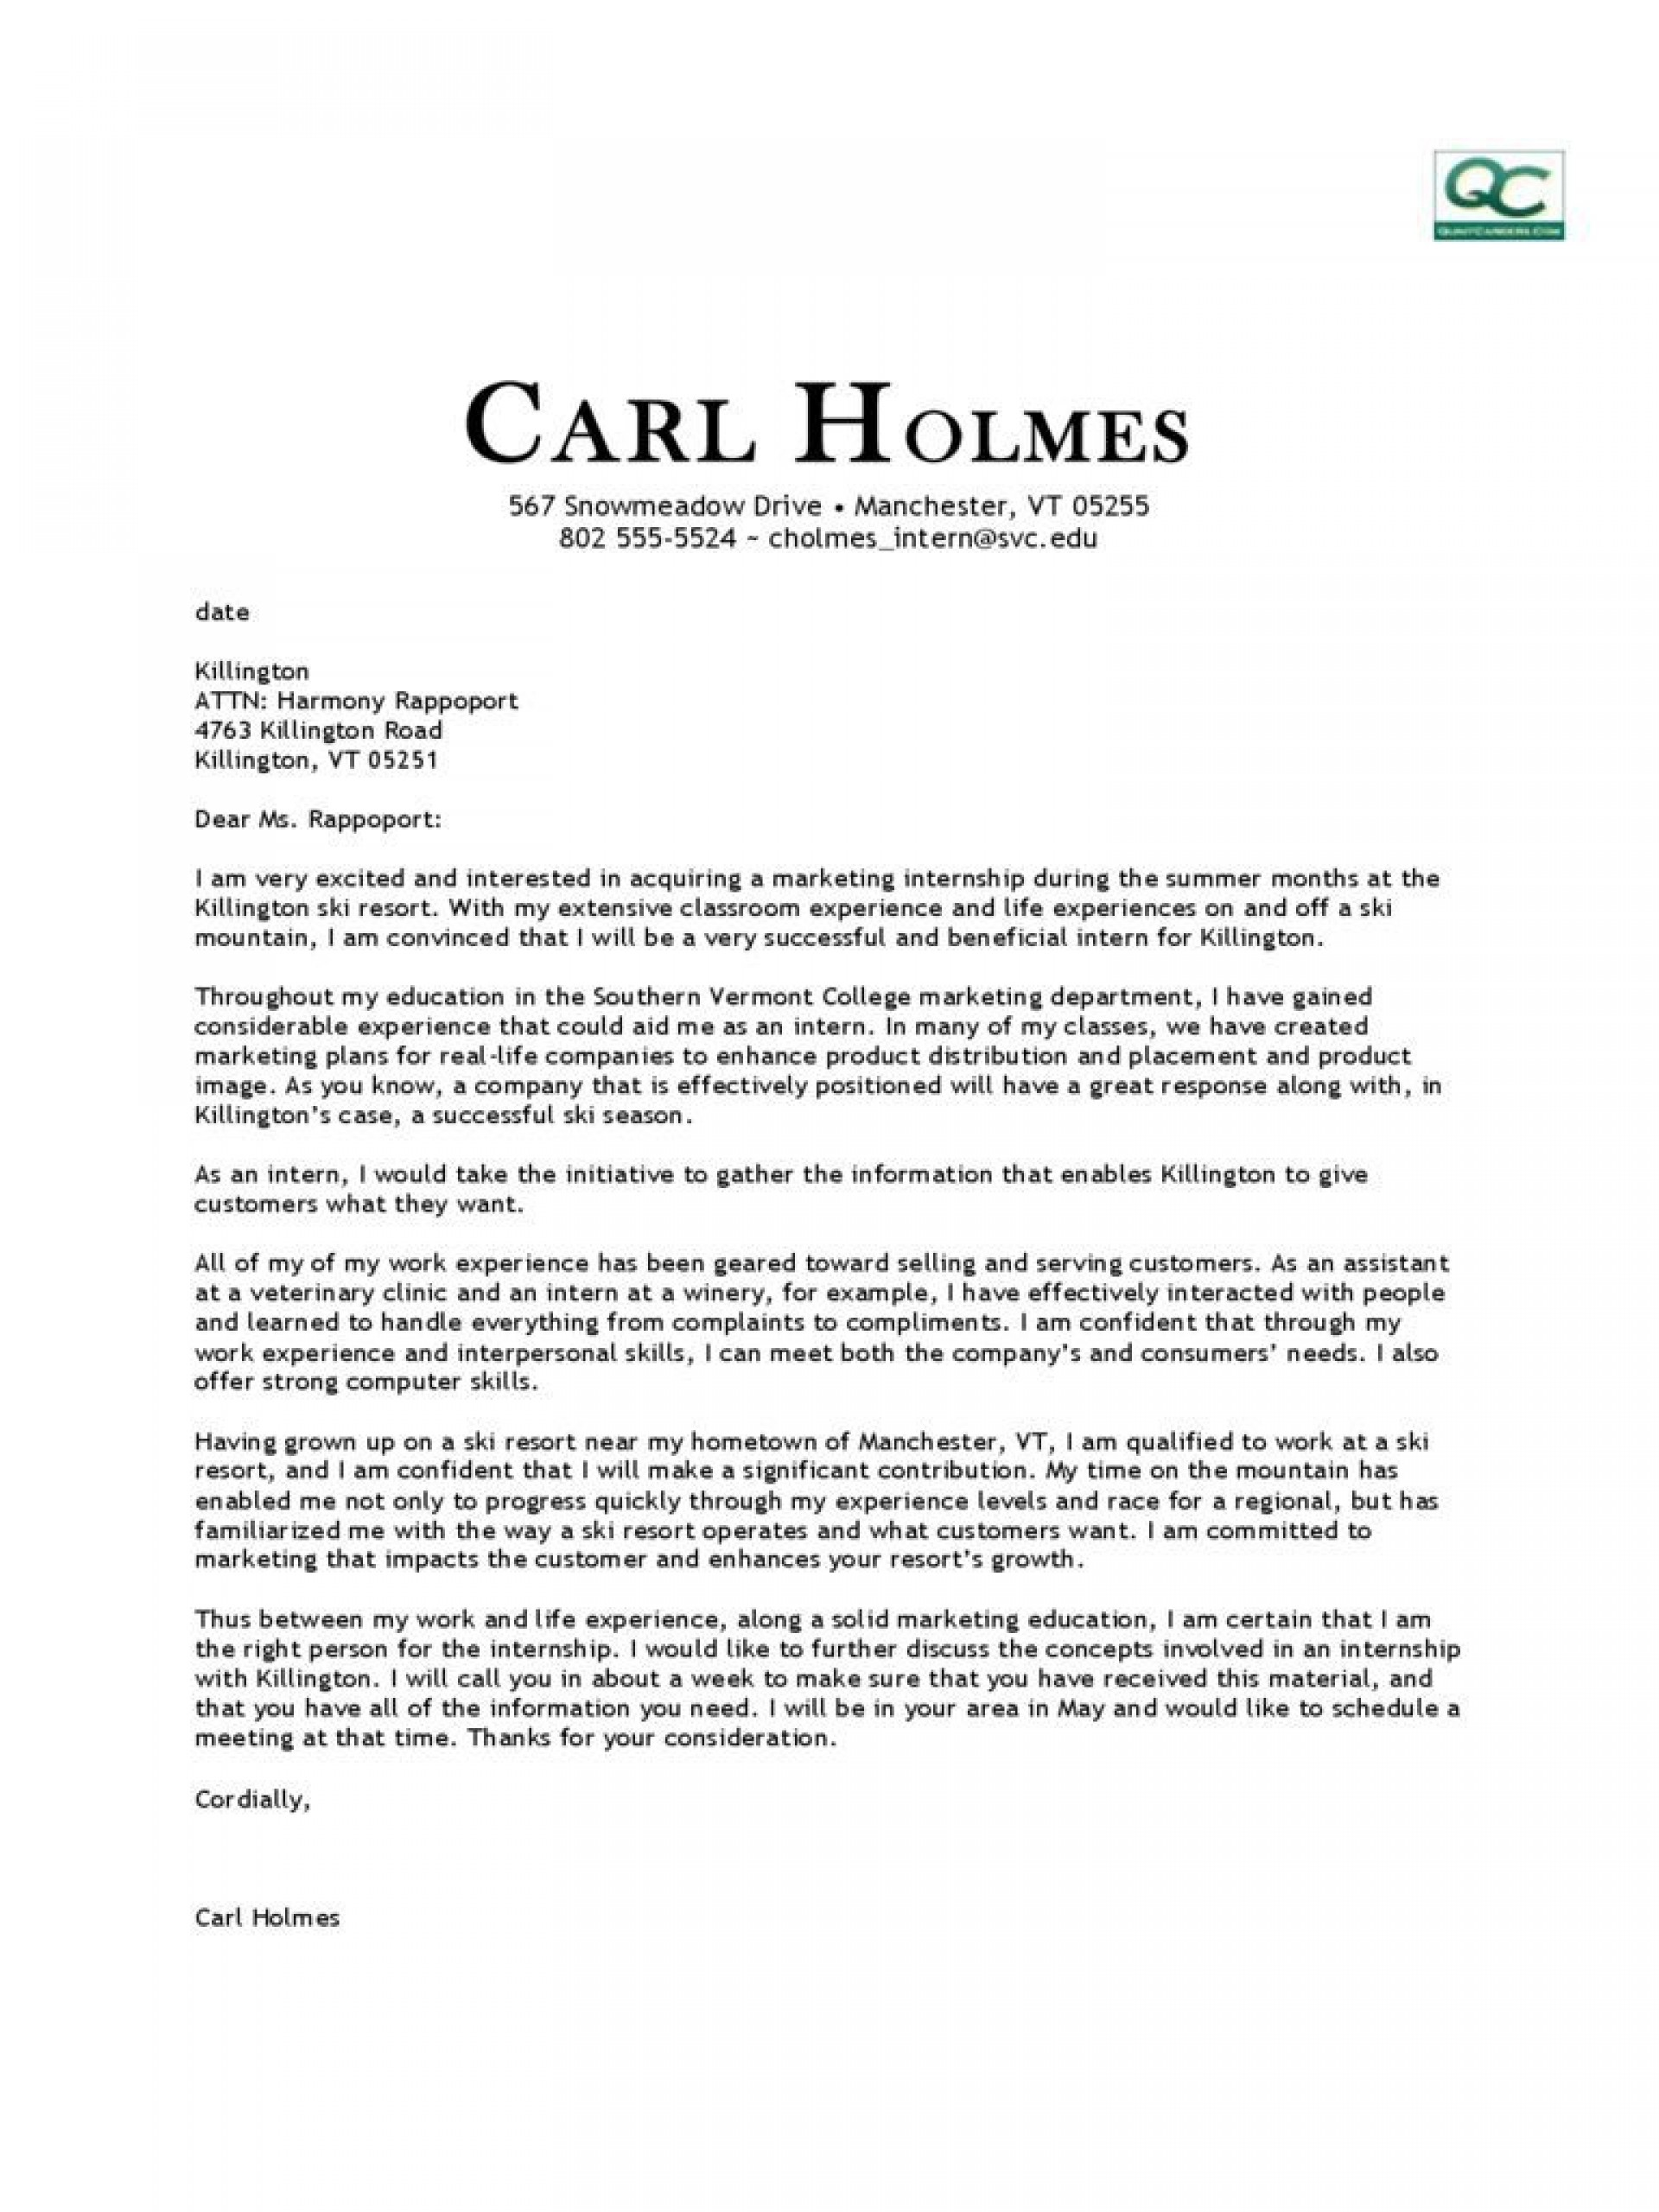 000 Unbelievable Cover Letter Template Internship Photo  Example Marketing Position For Civil Engineering1920